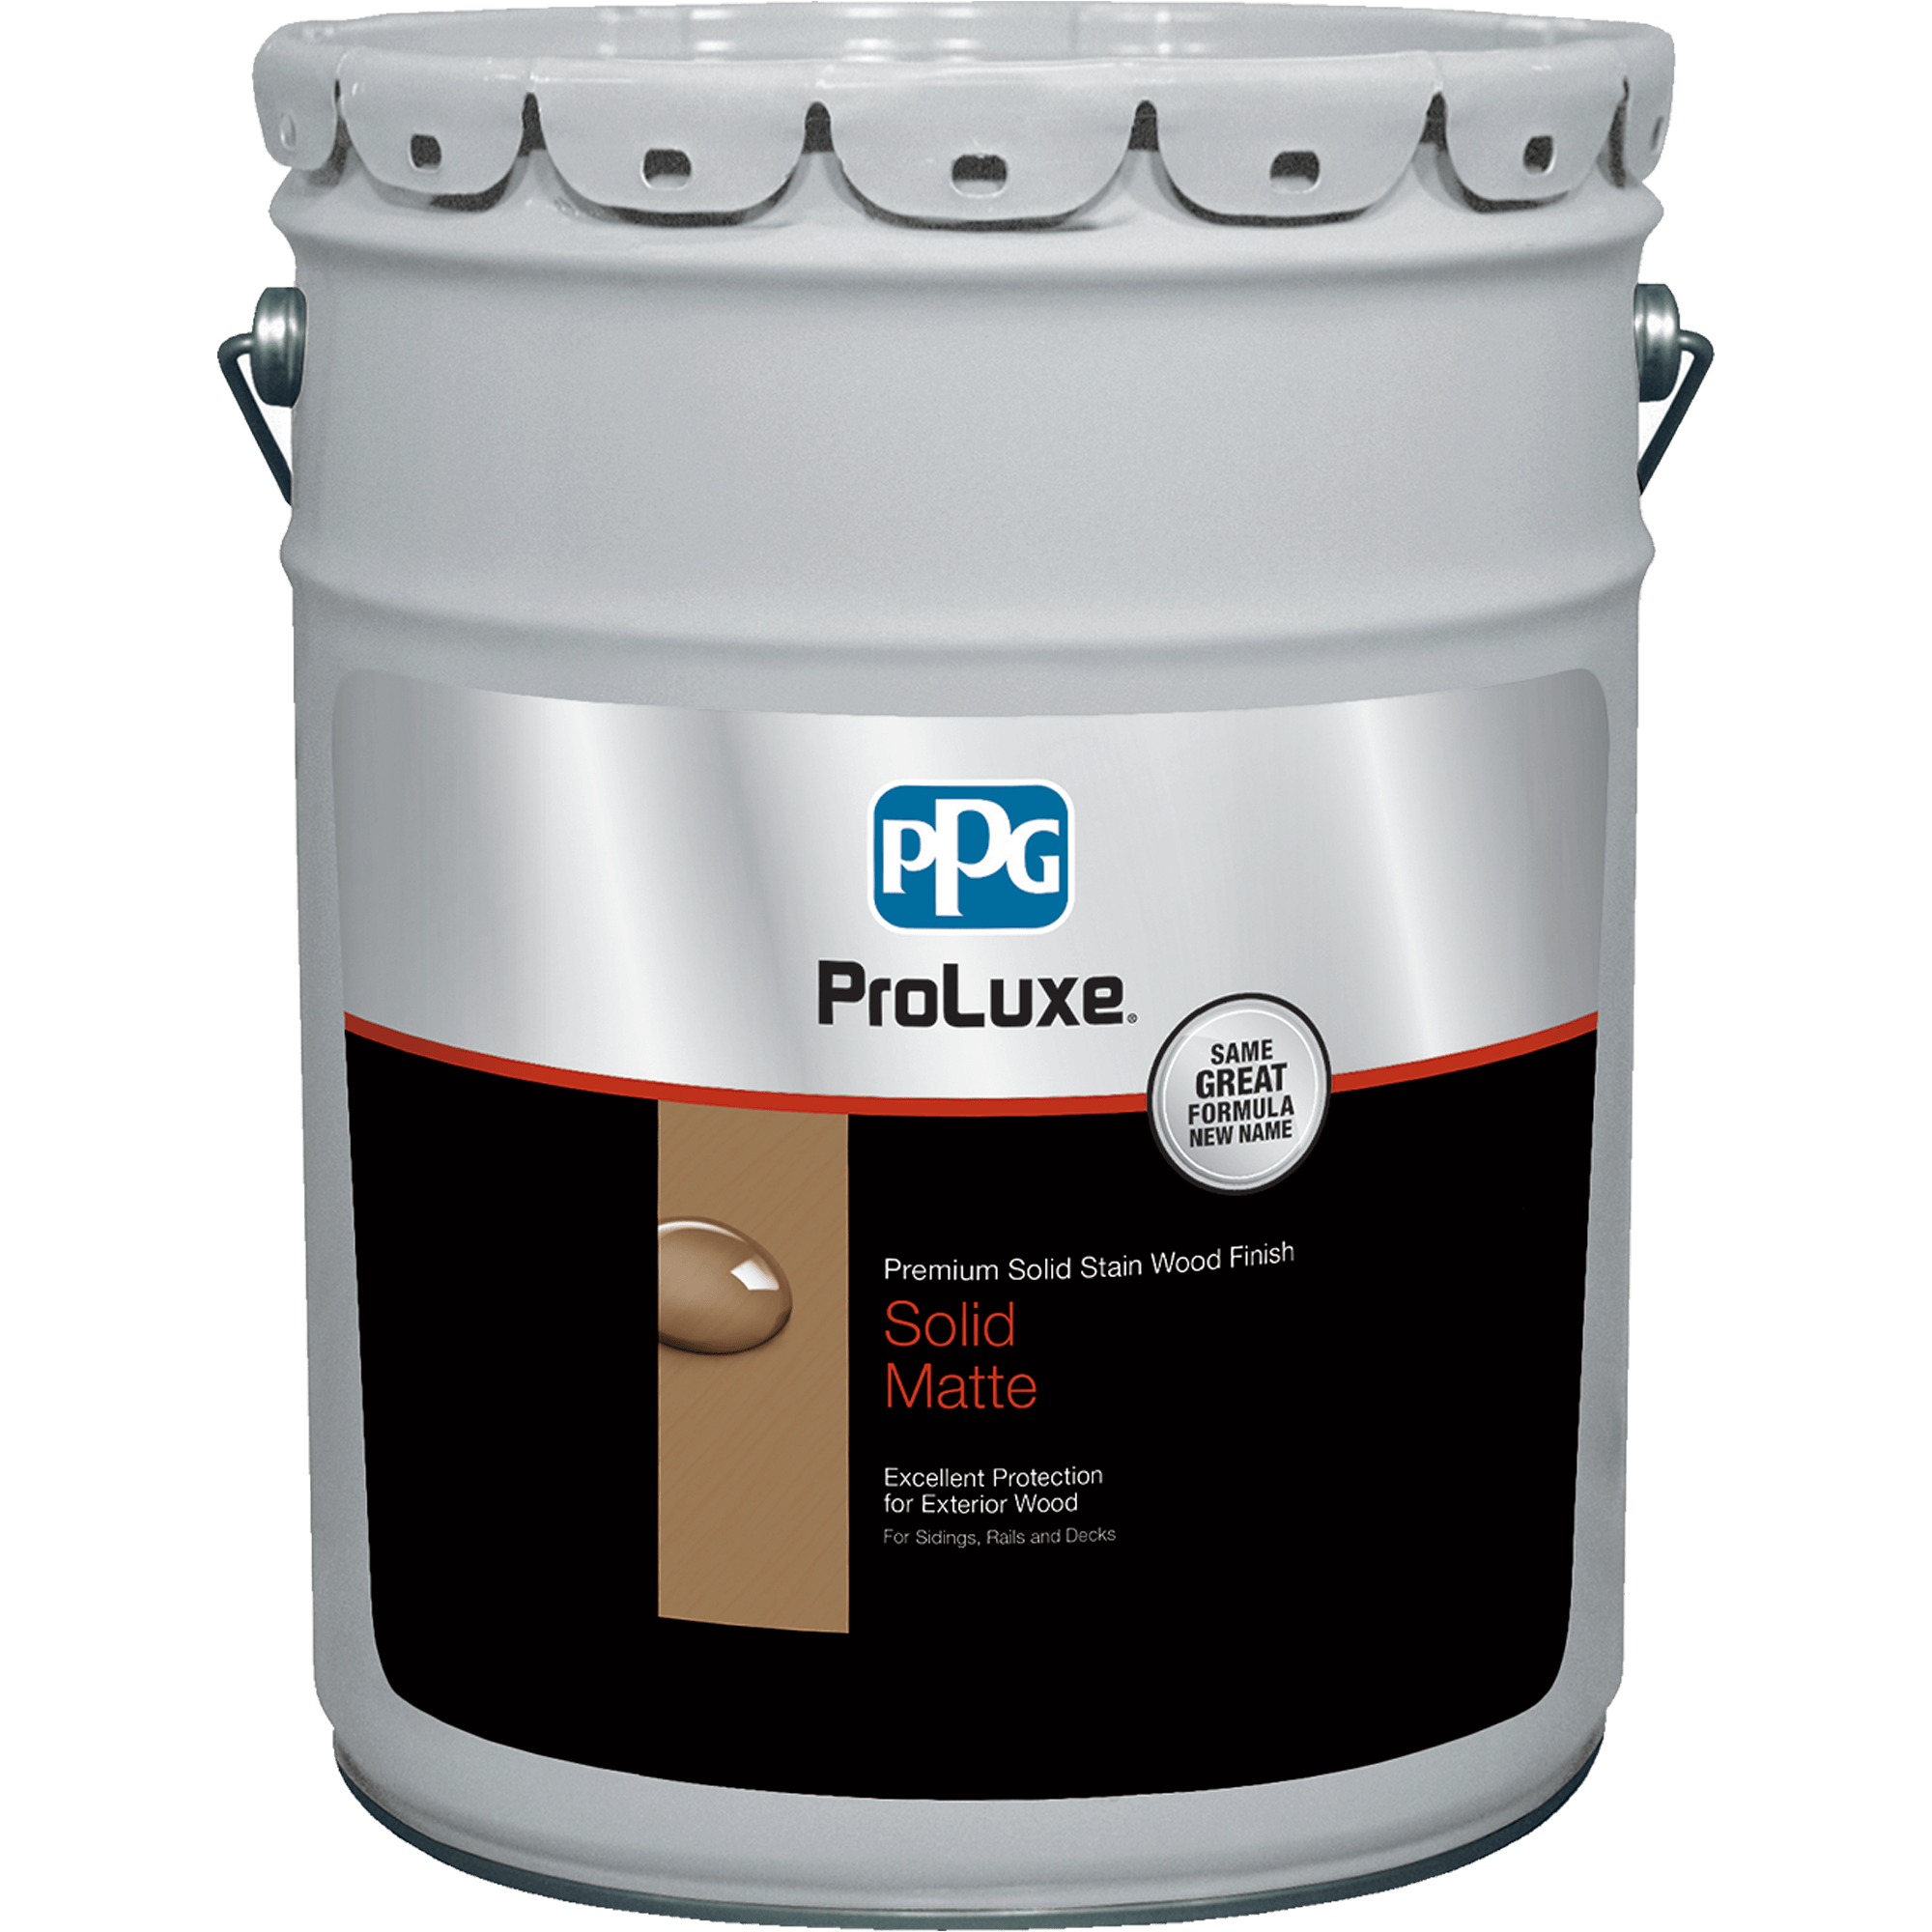 PROLUXE<sup>®</sup> Premium Solid Stain Wood Finish 5 Gallon